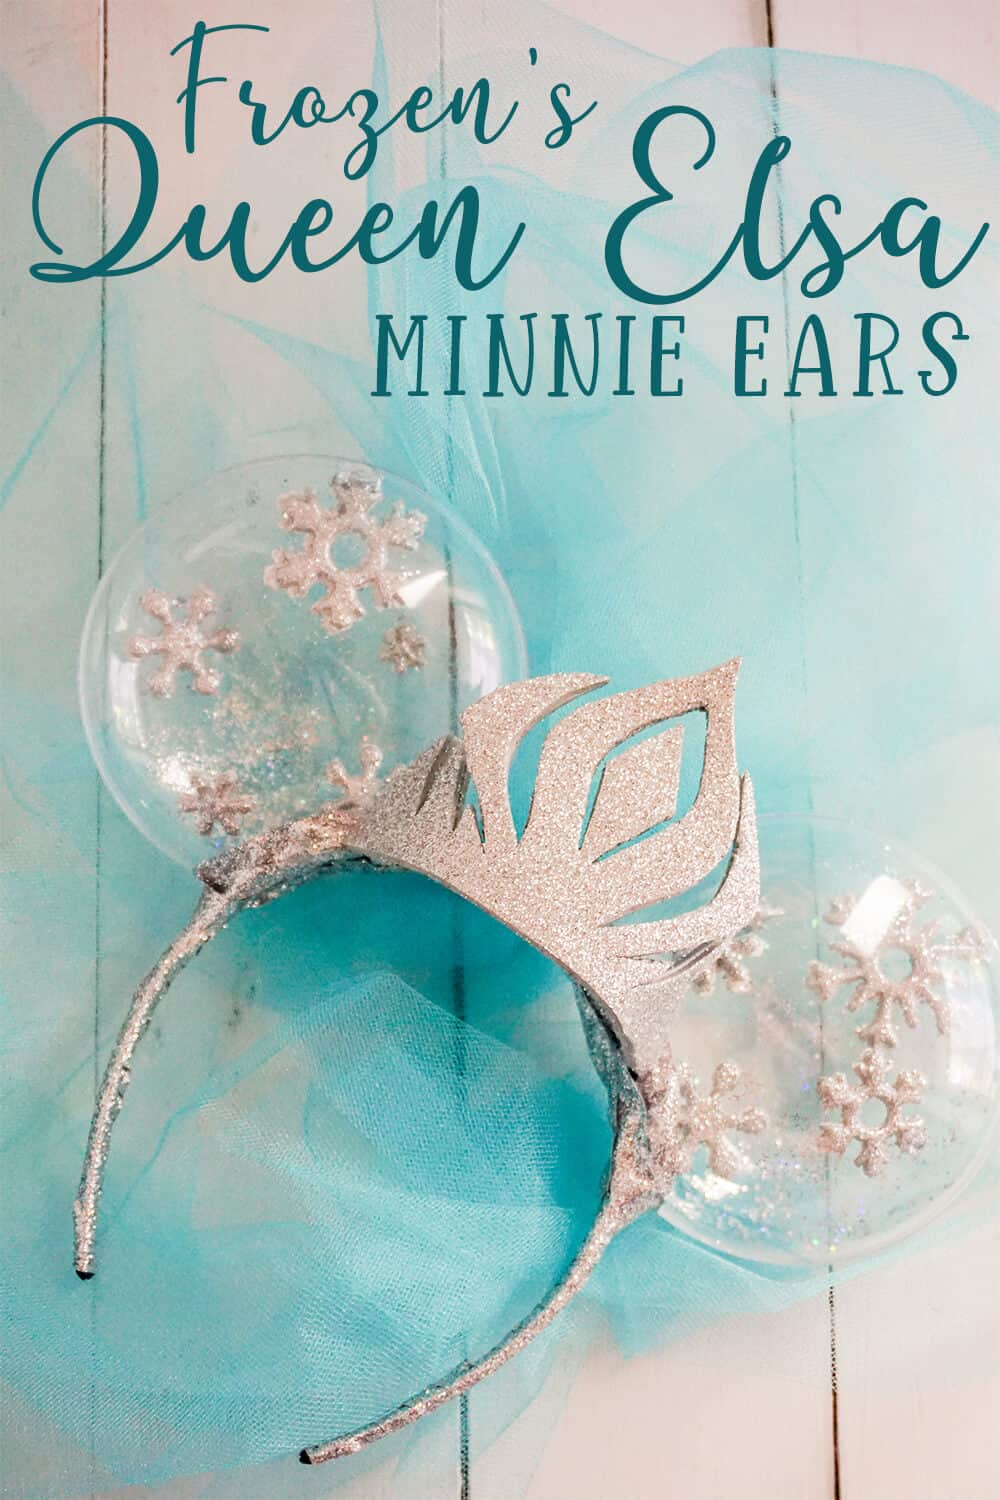 frozen queen elsa mickey ears on blue tulle on a white wood background with text wich reads frozen's queen elsa minnie ears